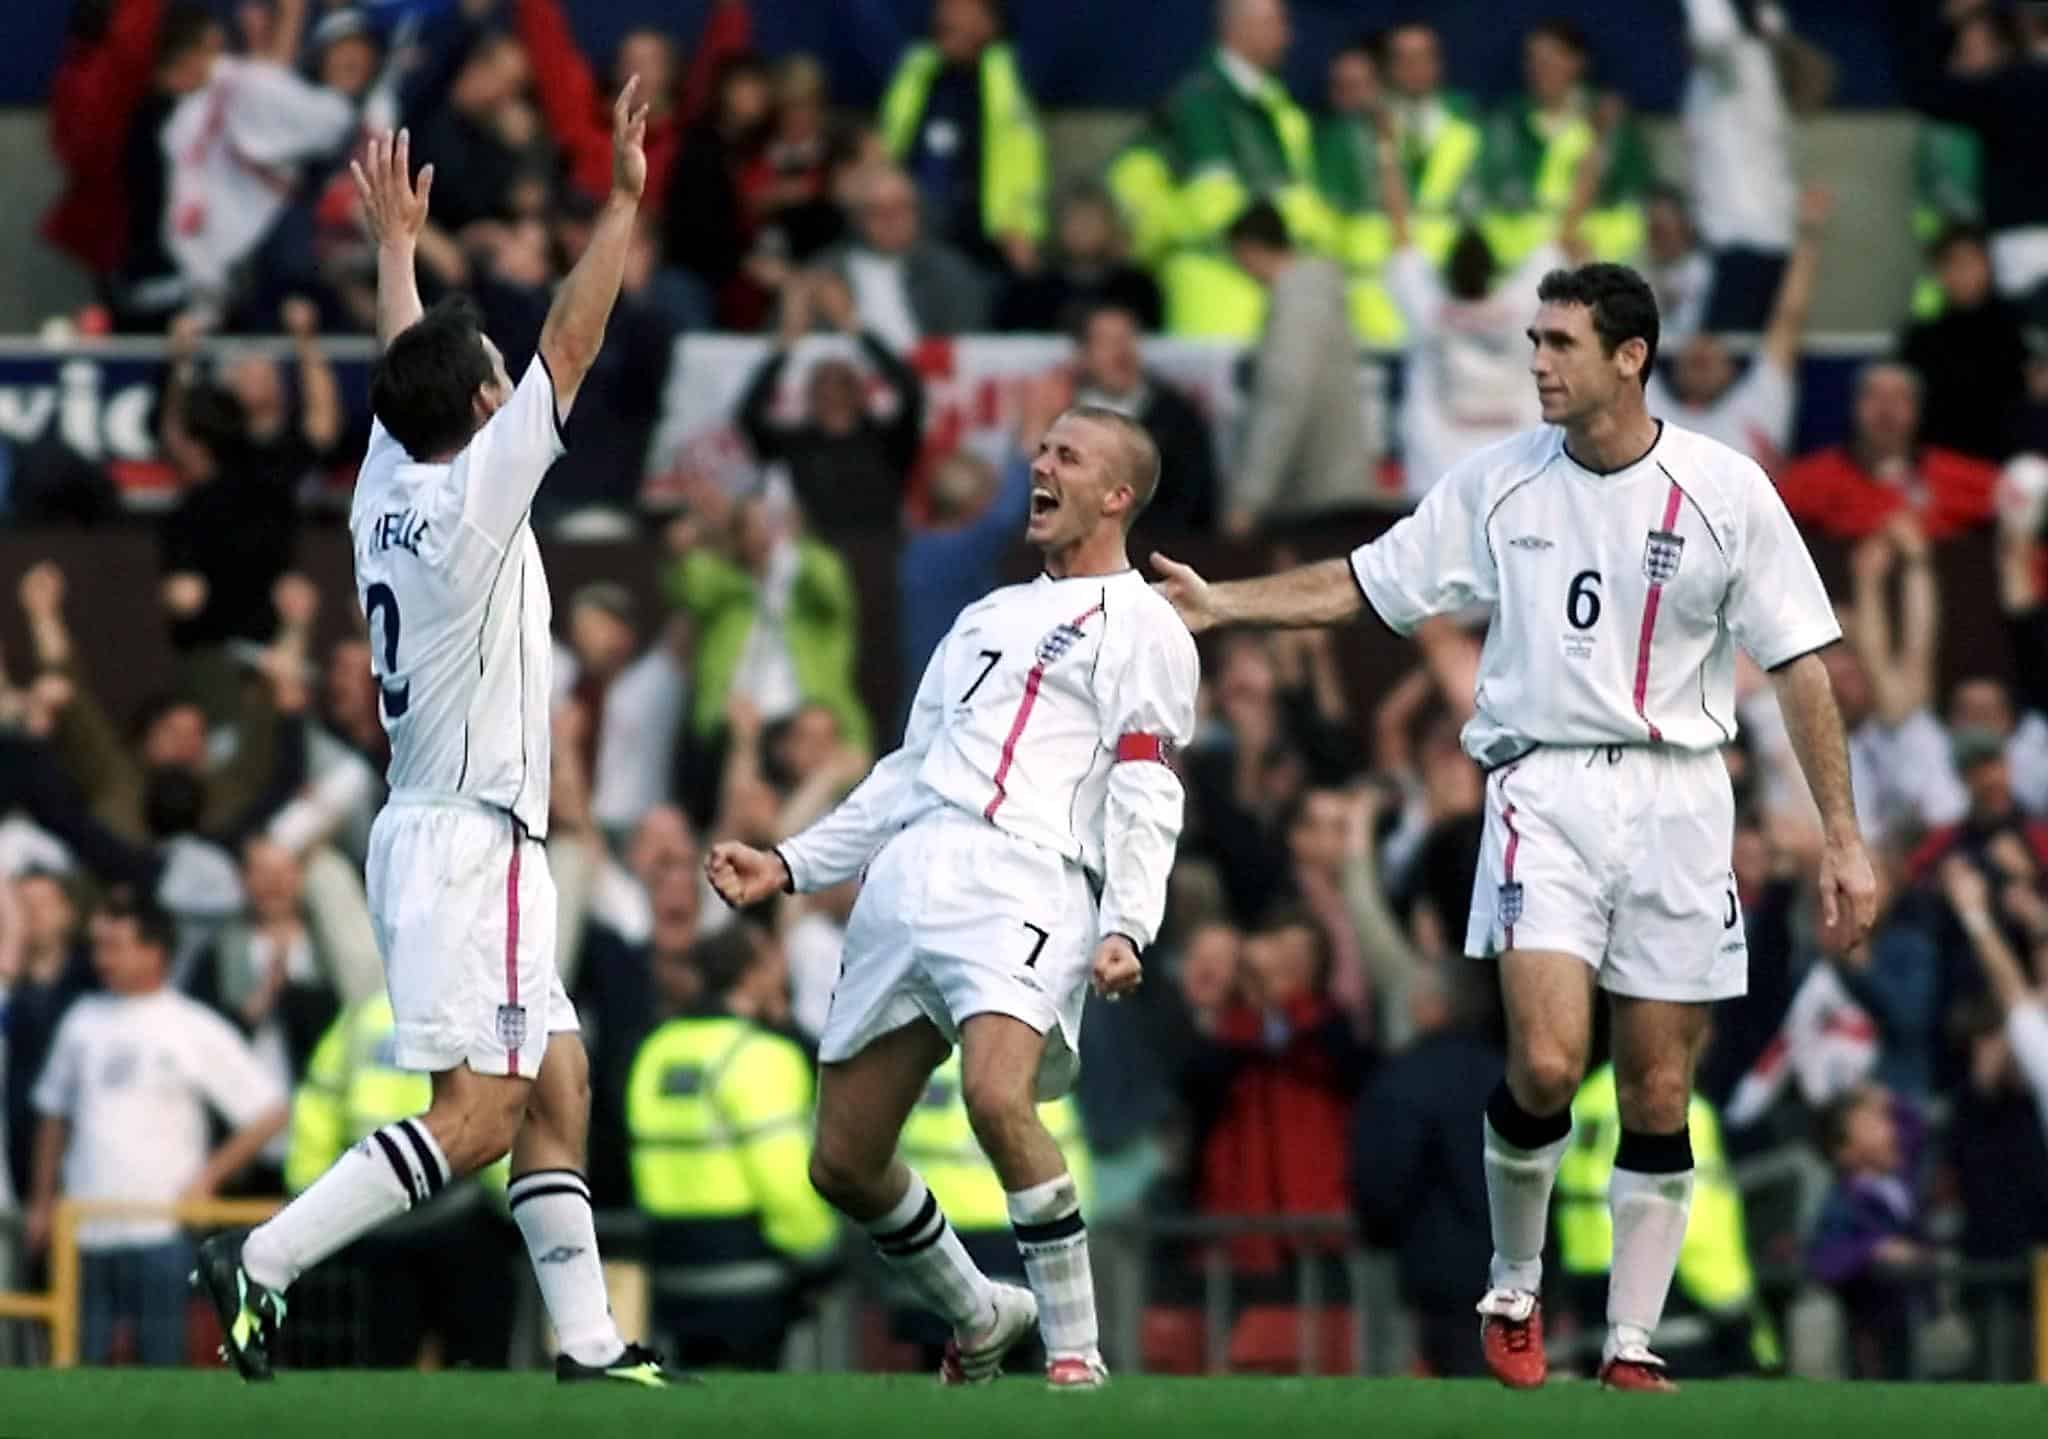 England 2-2 Greece: David Beckham's World Cup redemption